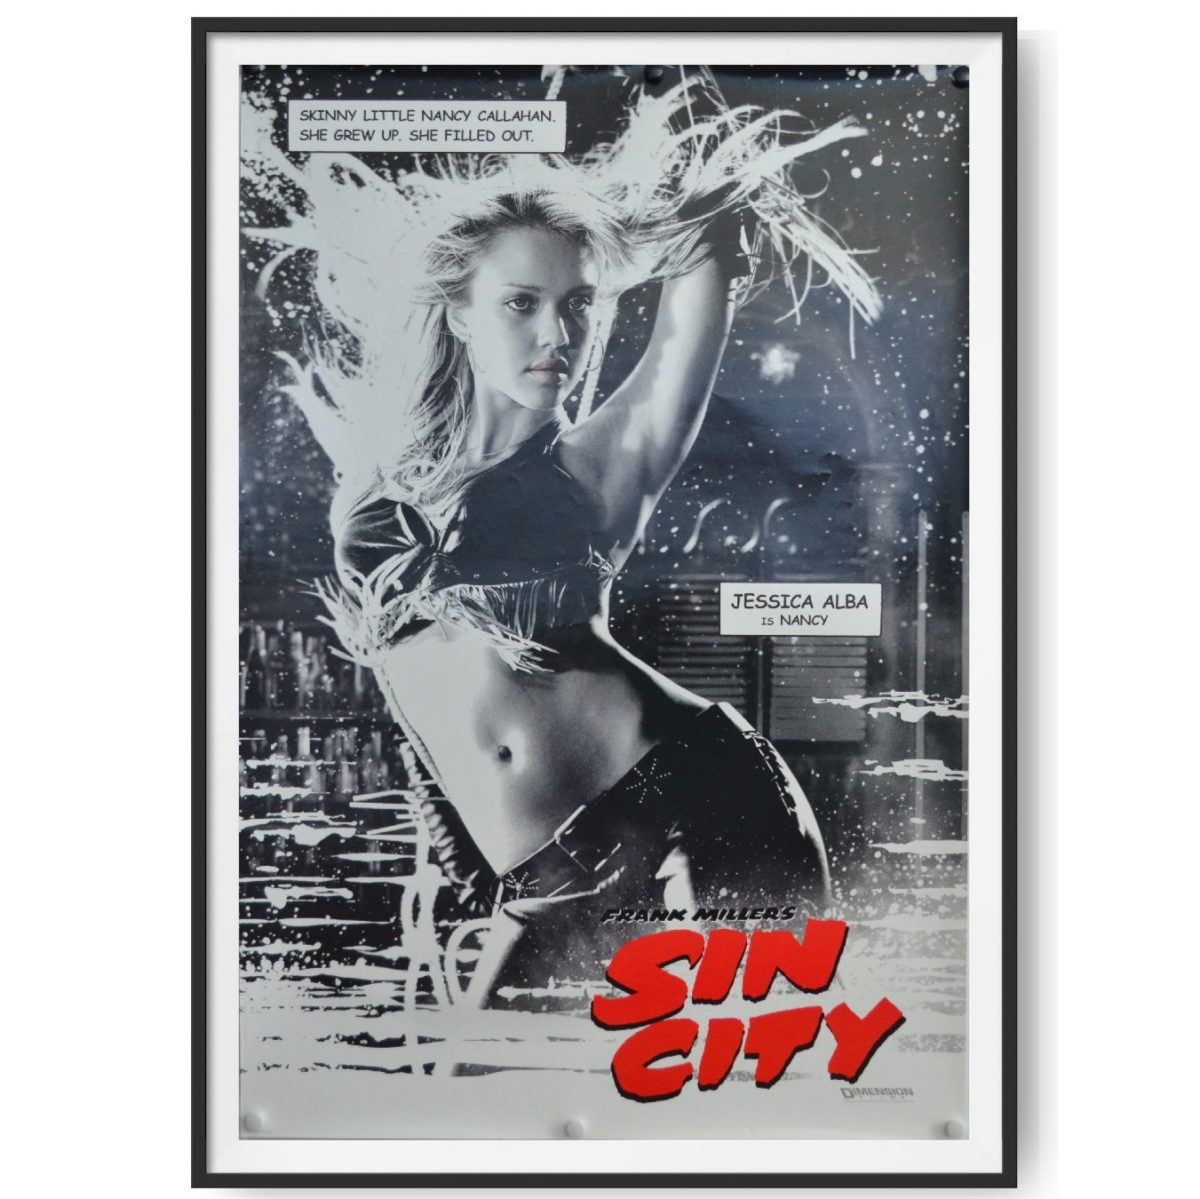 This is a framed US One Sheet Cinema Poster for the film Sin City. The image in the poster shows the character of Nancy played by Jessica Alba.